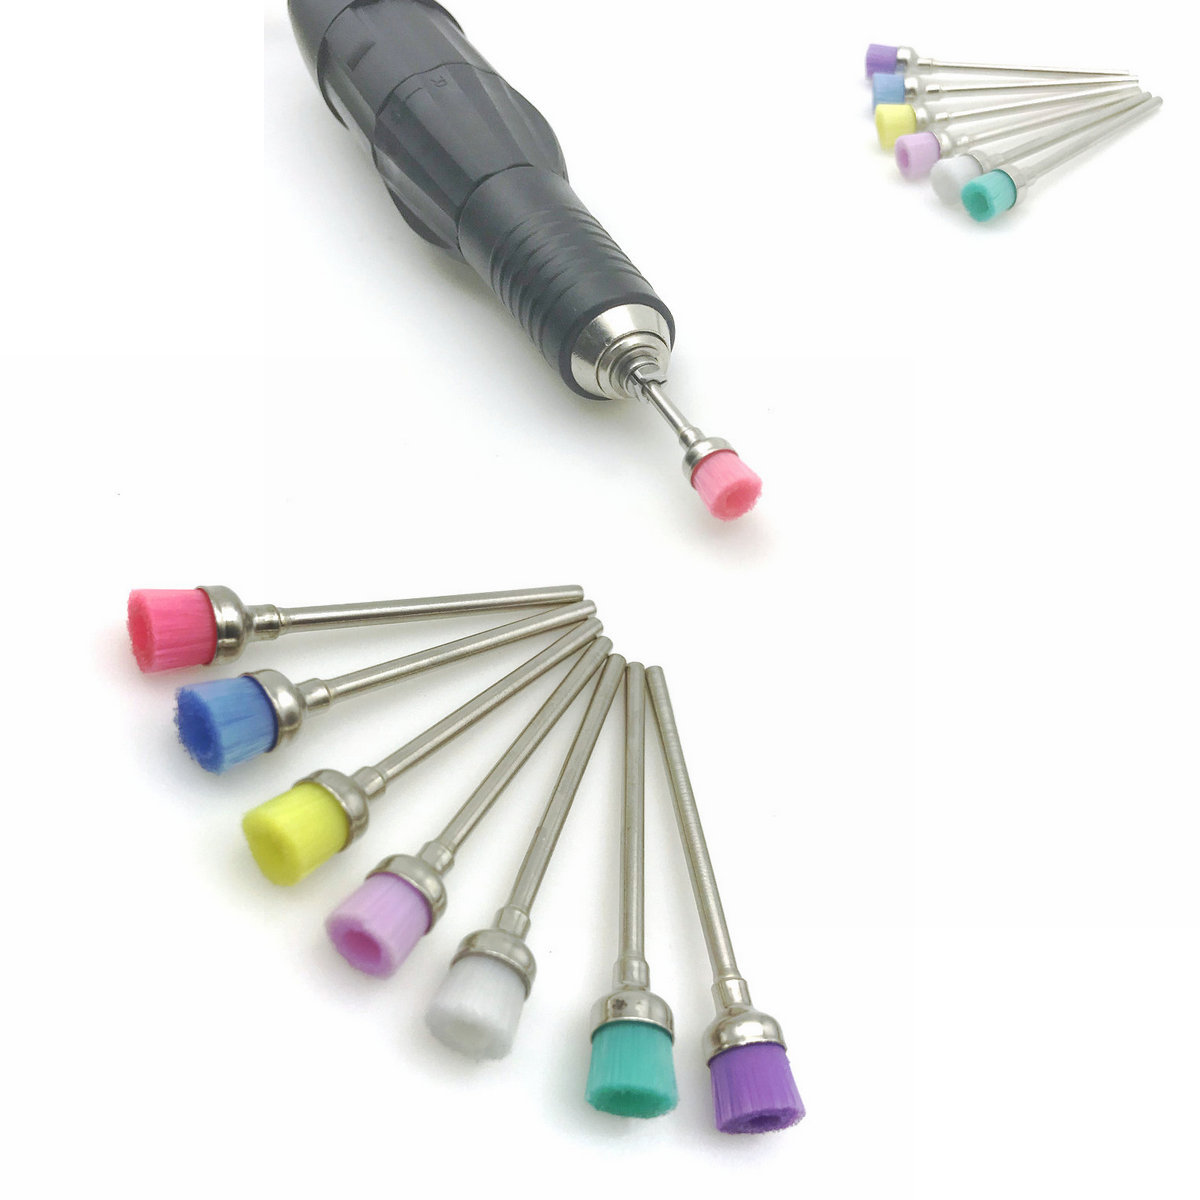 7pcs Dental Nail Art Drill Bit Cleaning Brush Dental Colorful Bowl Polisher Brush Manicure Accessories Brush Tools